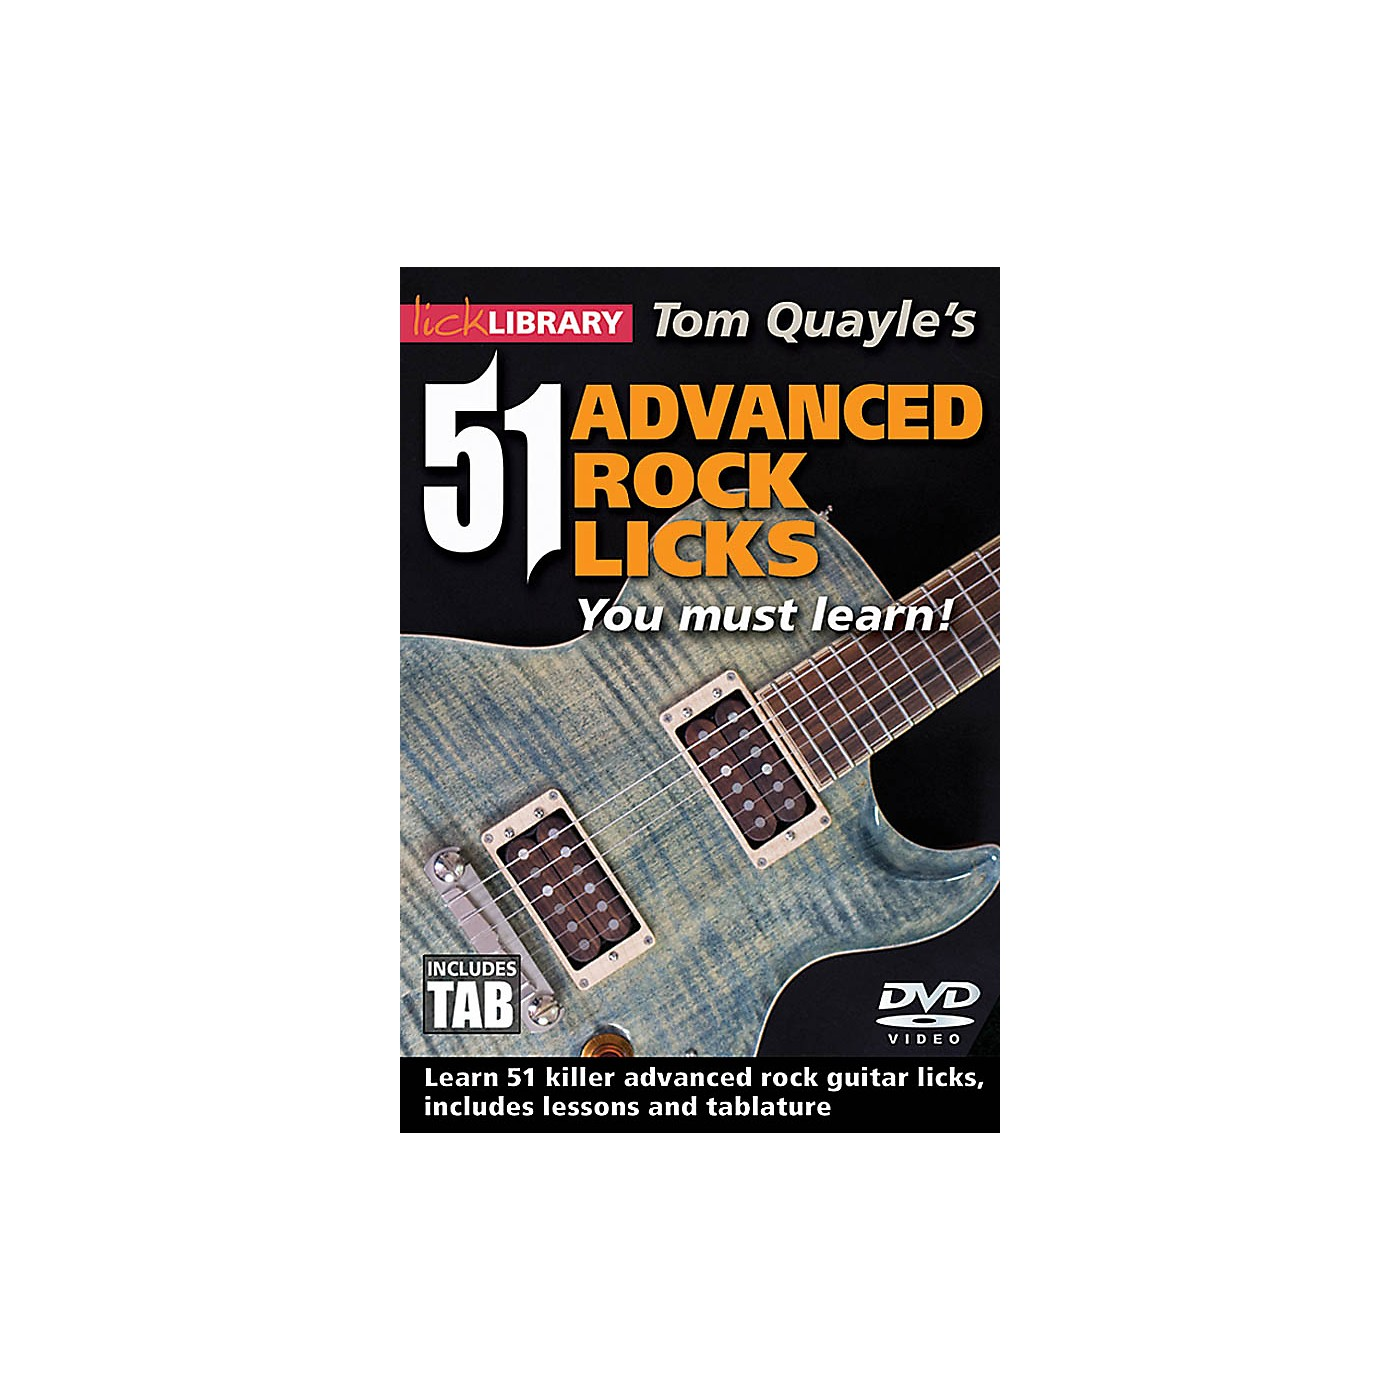 Licklibrary Tom Quayle's 51 Advanced Rock Licks You Must Learn! Lick Library Series DVD Written by Tom Quayle thumbnail